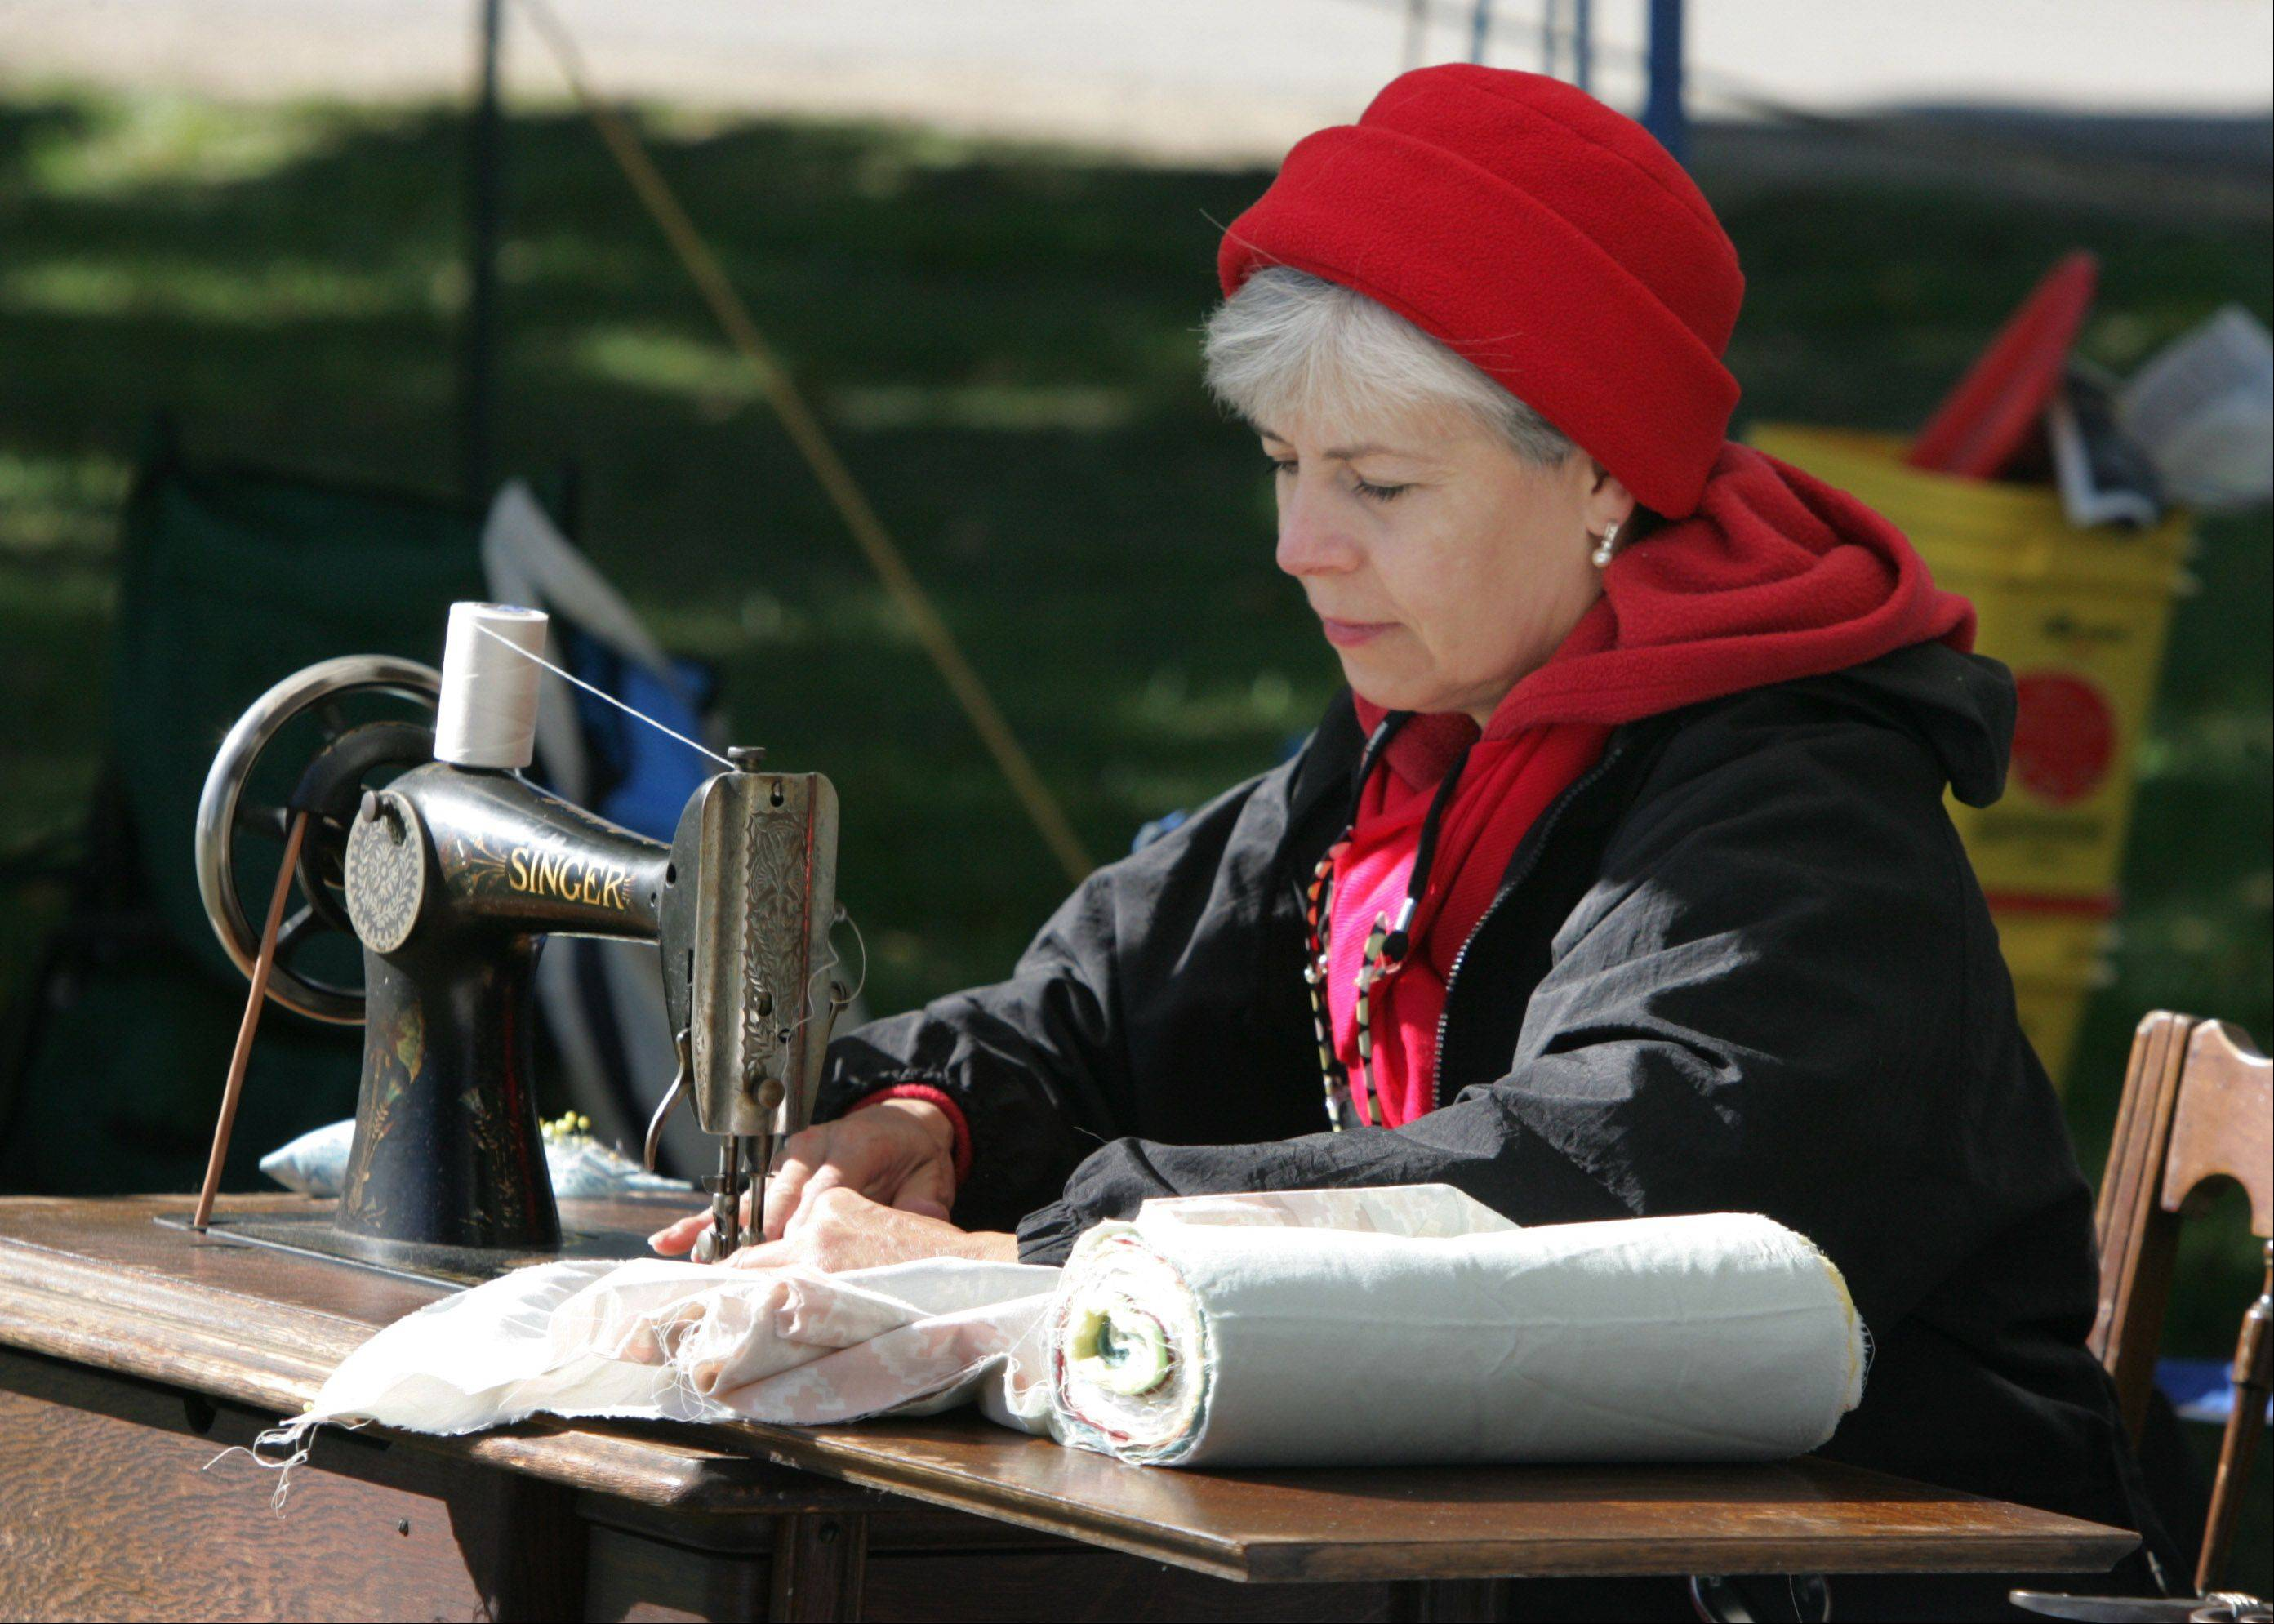 Trudi Handzel of Palatine uses a 1905 Singer sewing machine to sew a quilt during last year's Farm Heritage Festival at Lakewood Forest Preserve near Wauconda.